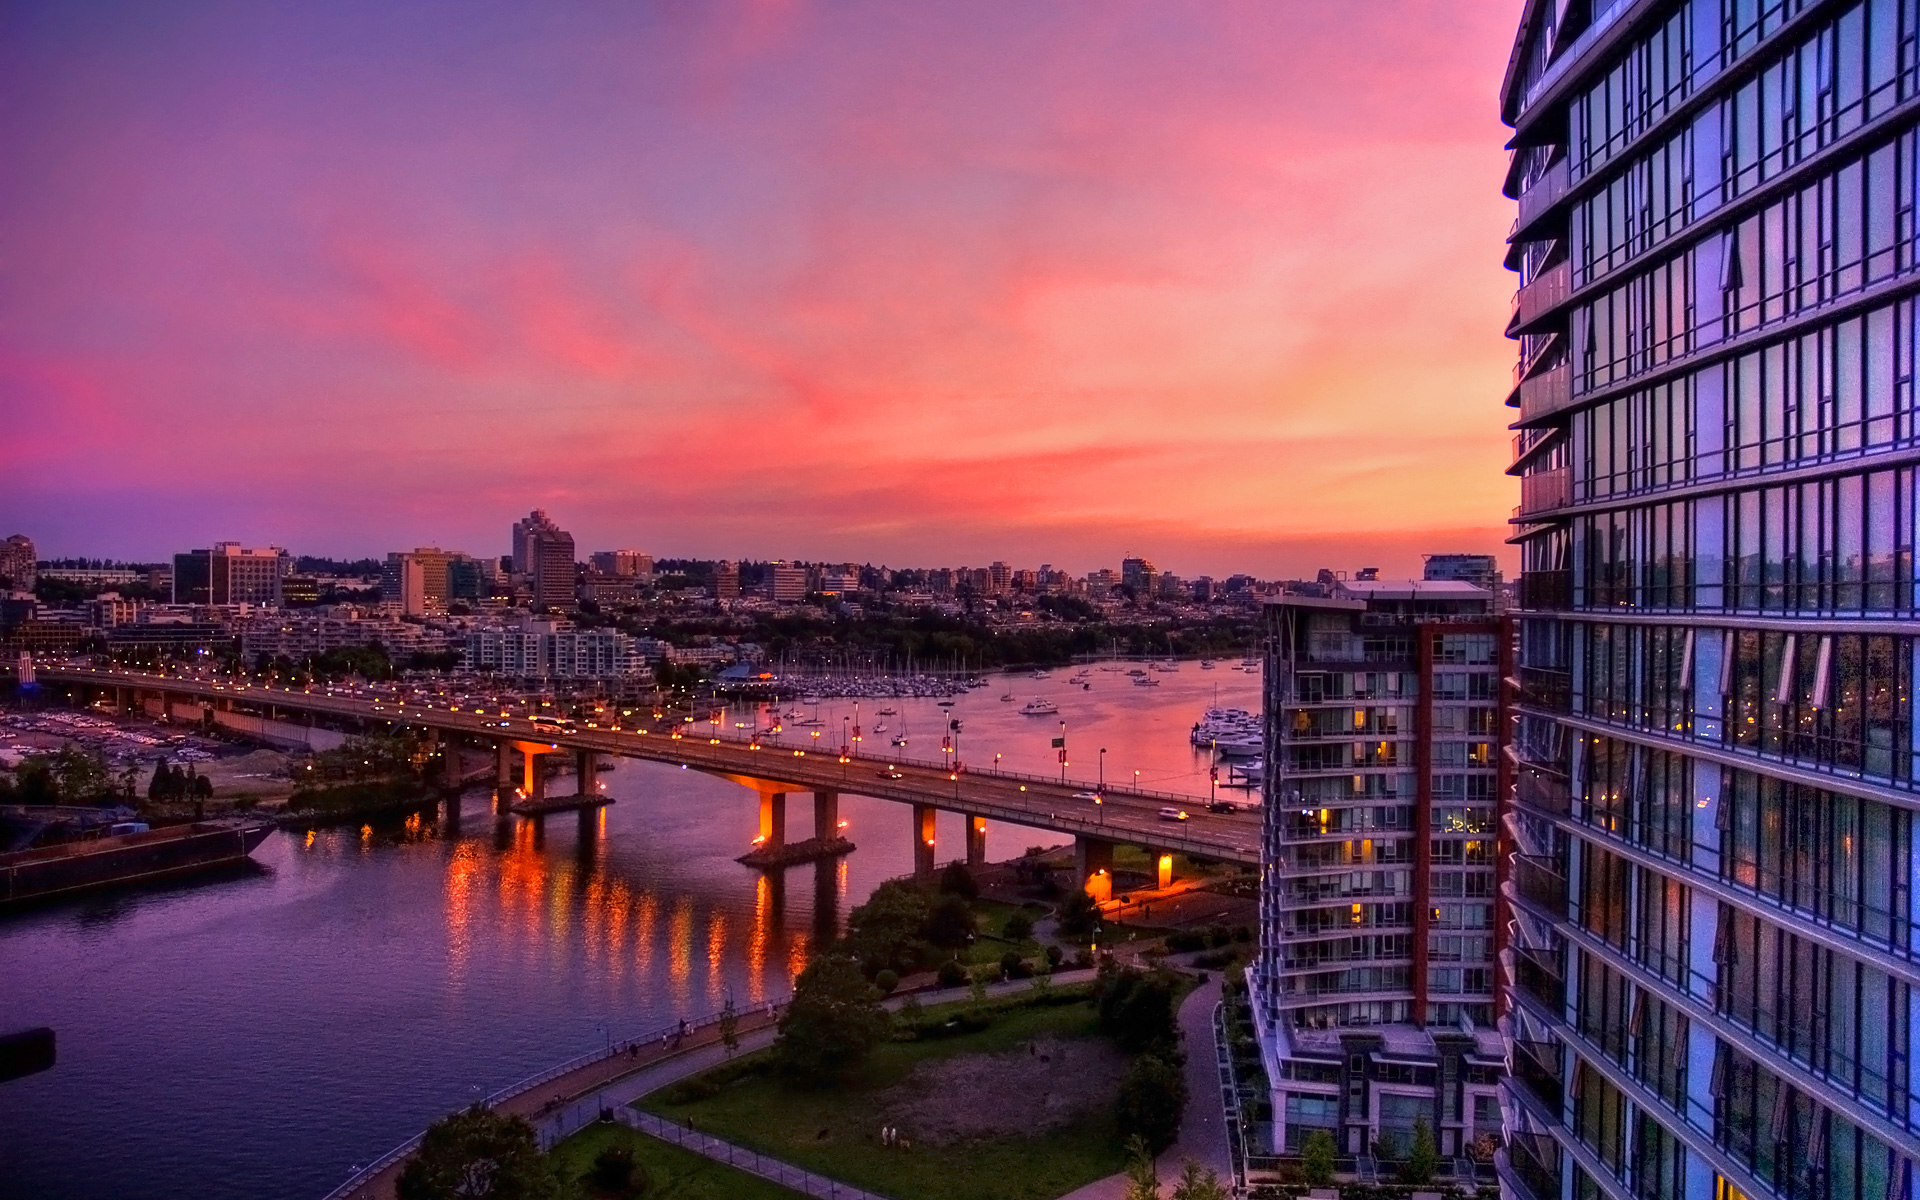 Sunset In The City Hd Wallpaper Background Image